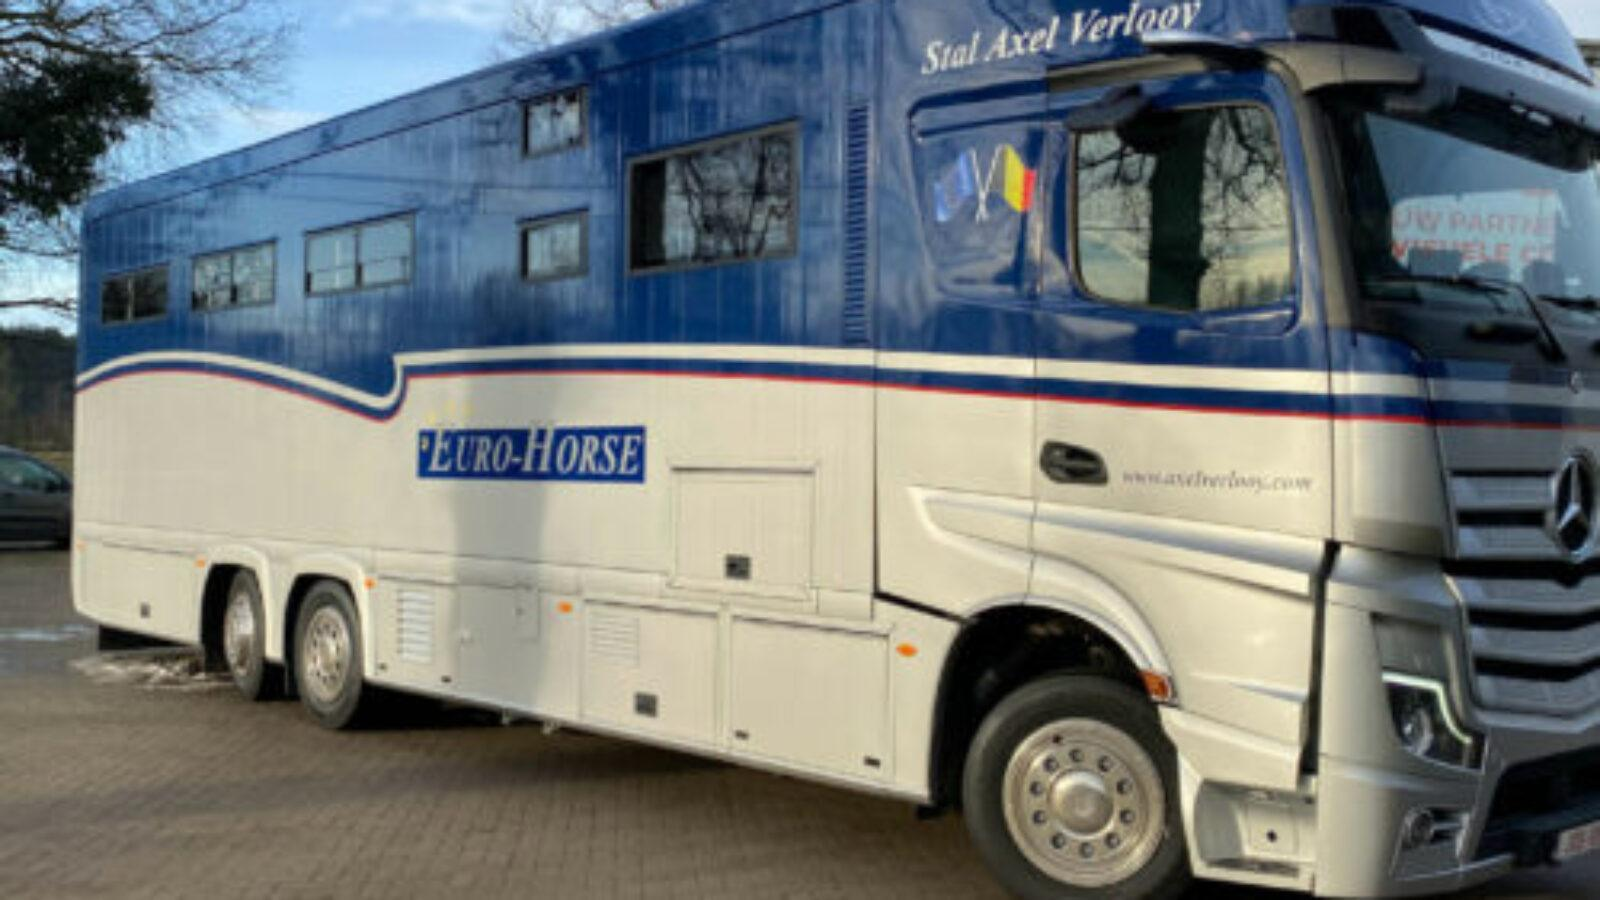 Euro Horse Axel Verlooy wagenbelettering